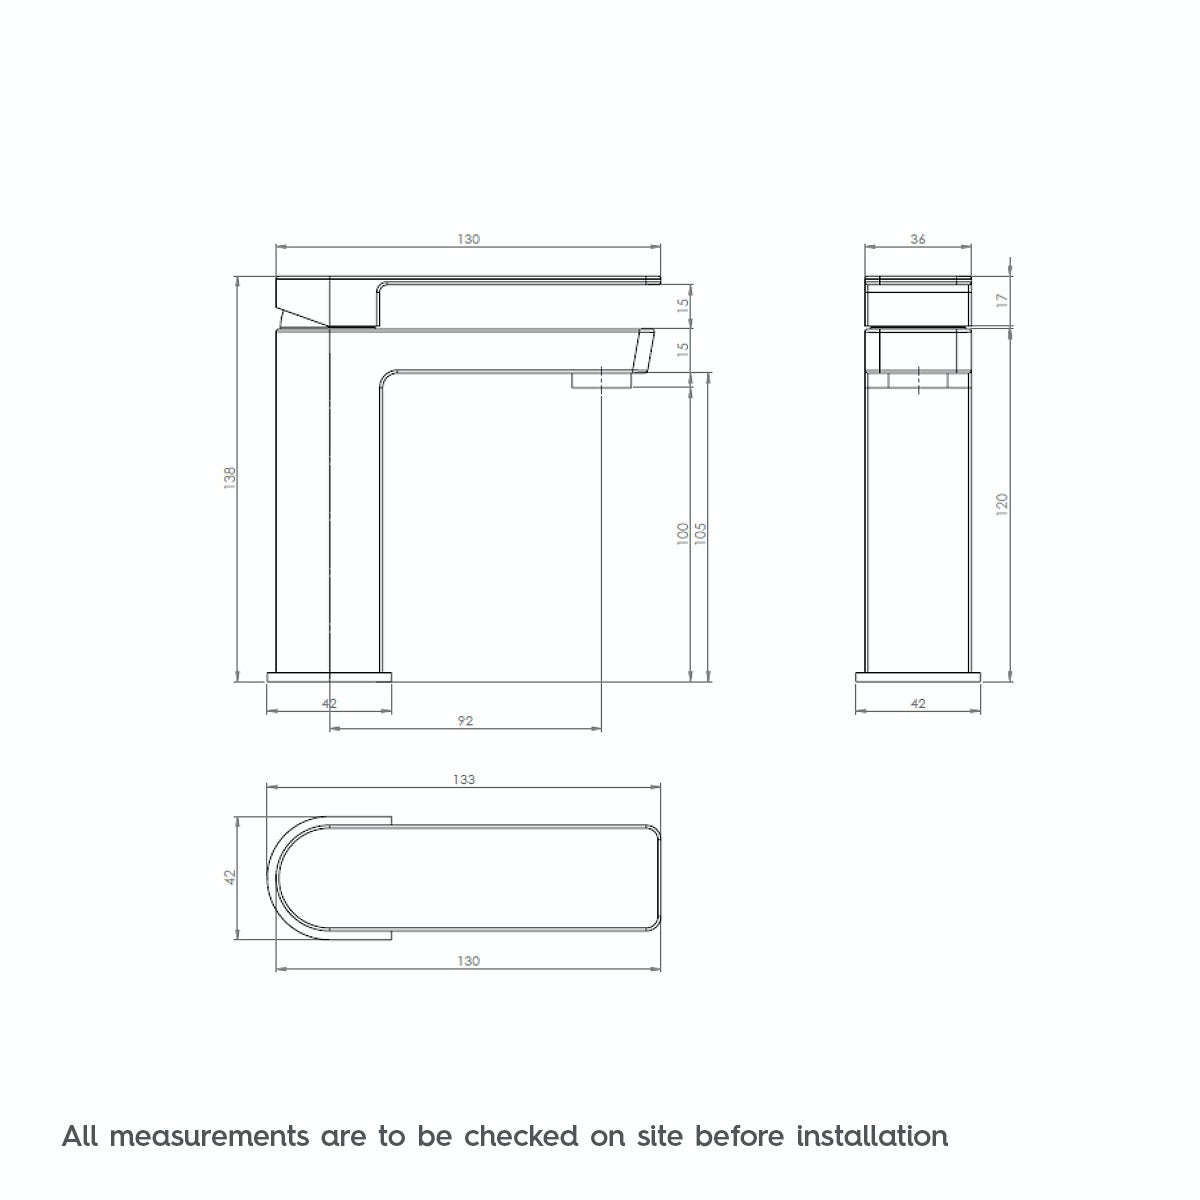 Dimensions for Mode Ellis basin mixer tap